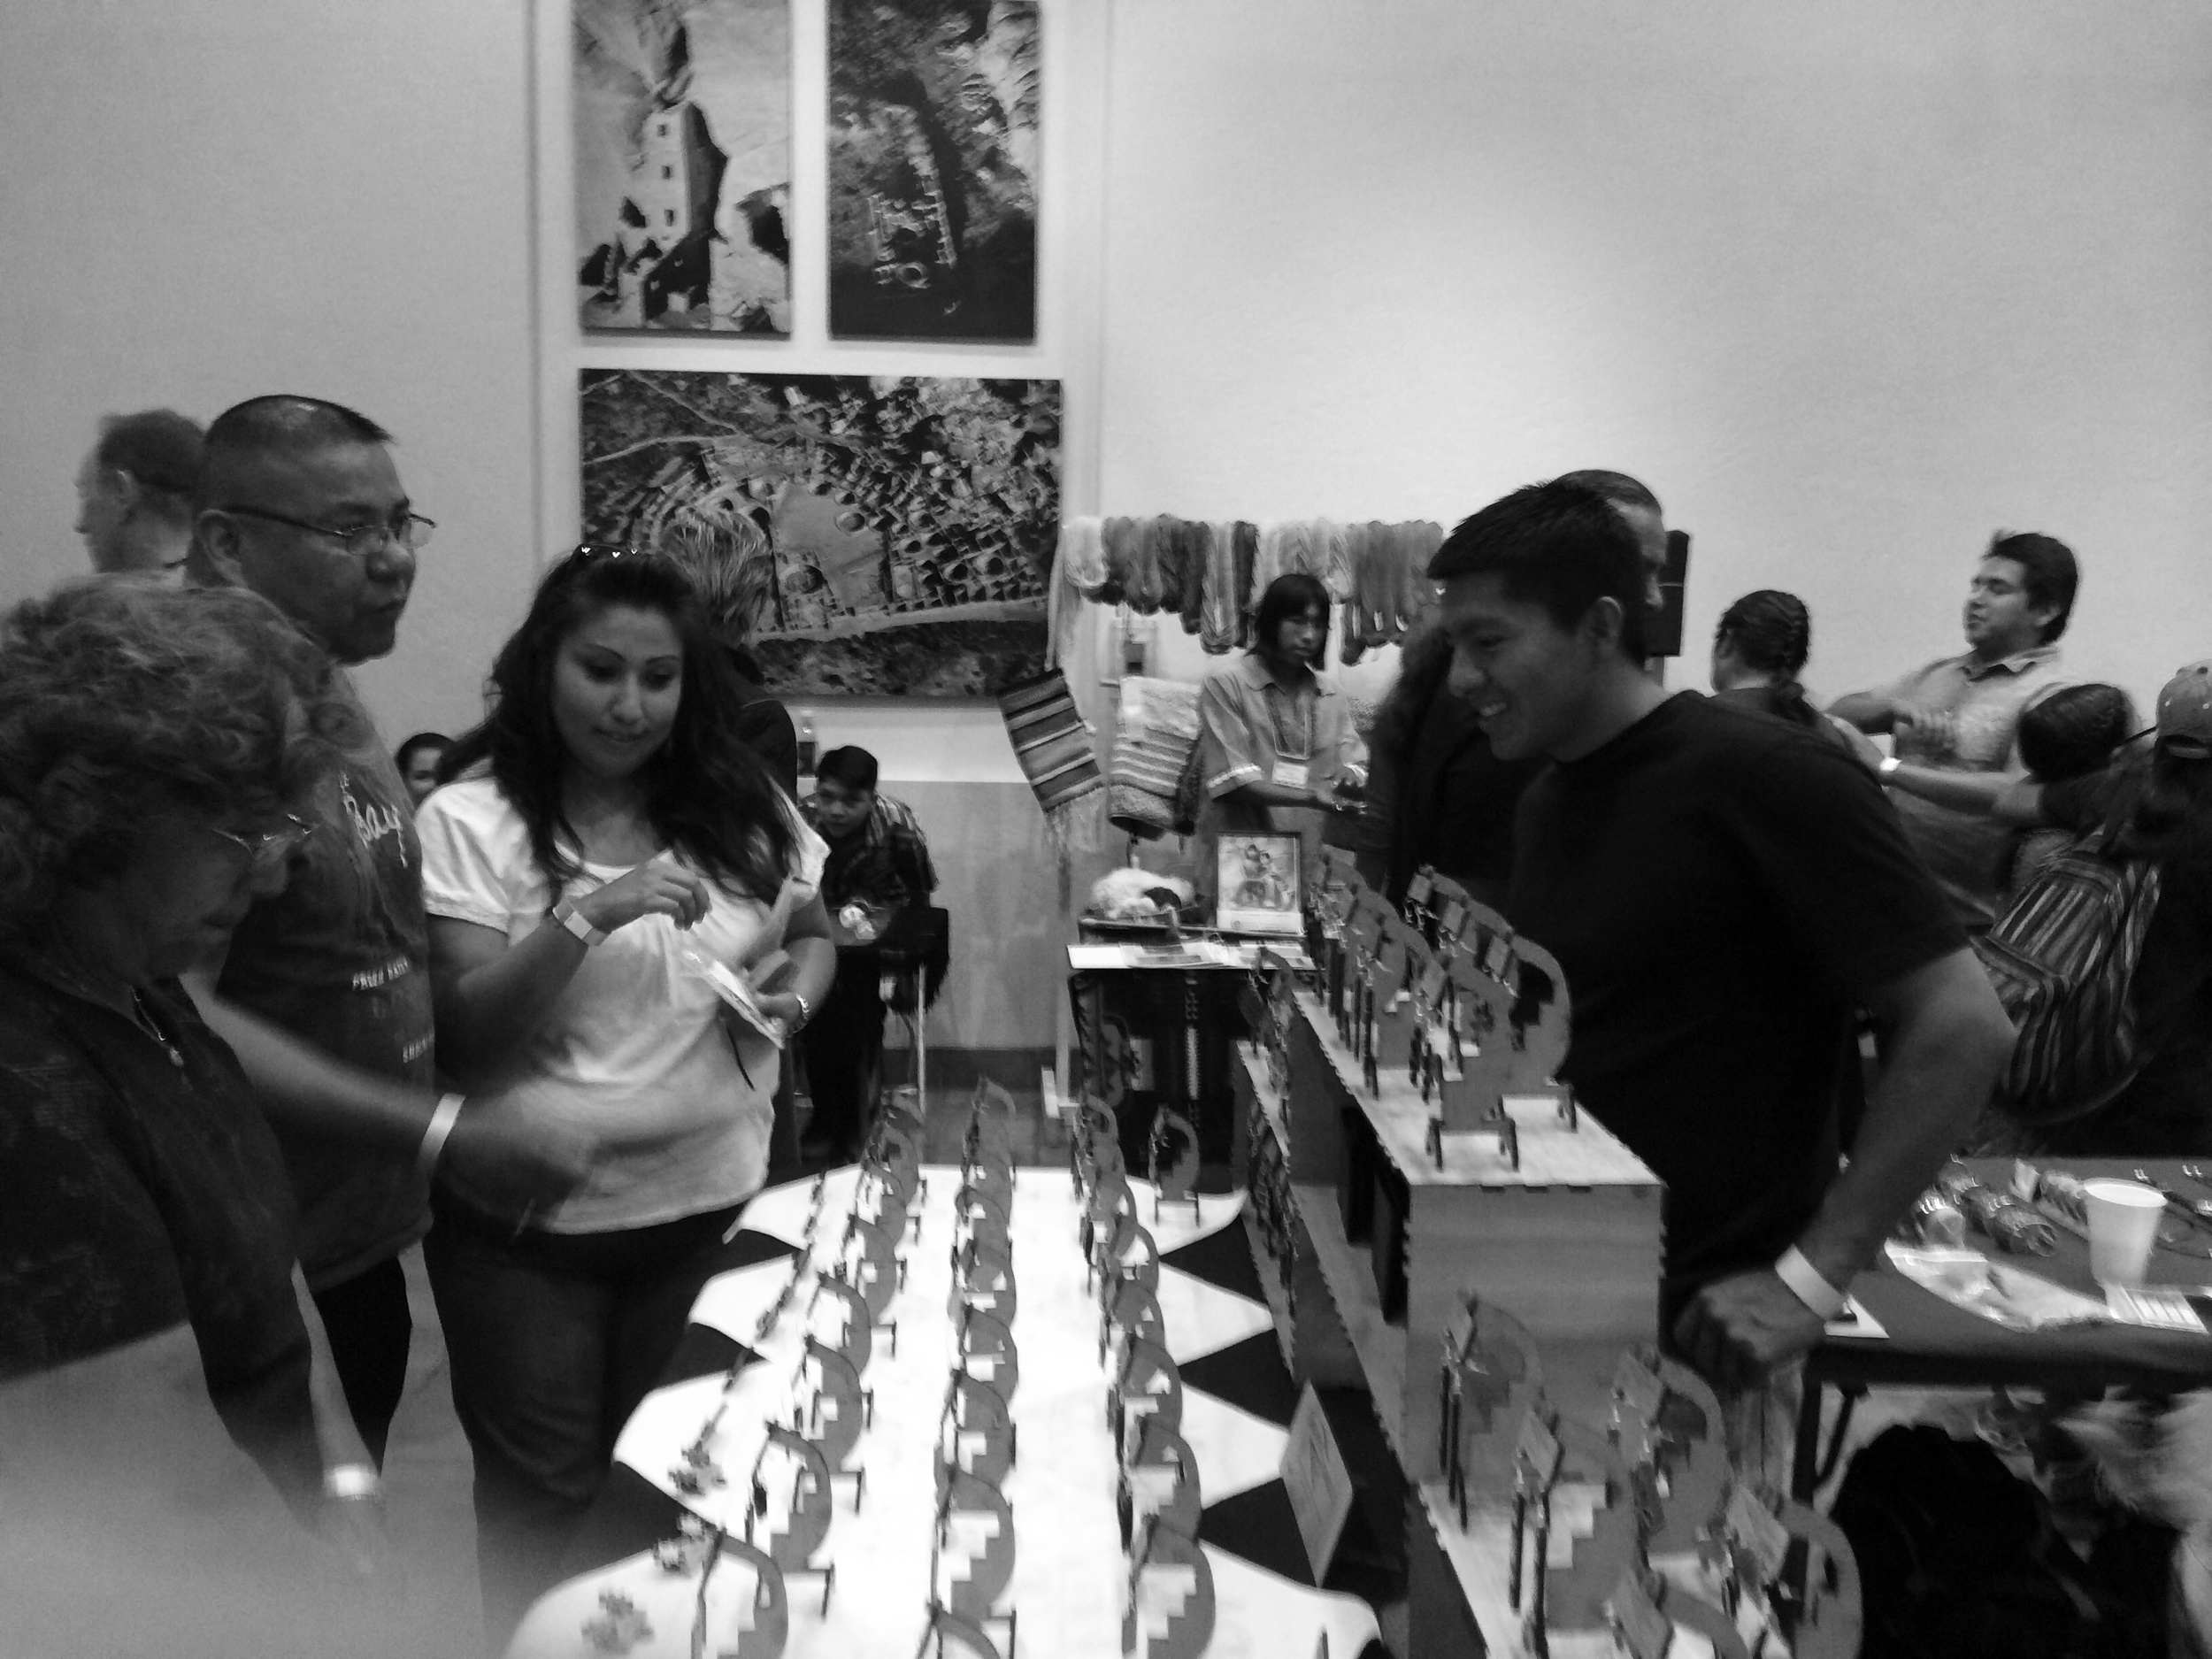 Engaging with customers. Me (Mike Adams) to the right. All the beautiful stands on the table.